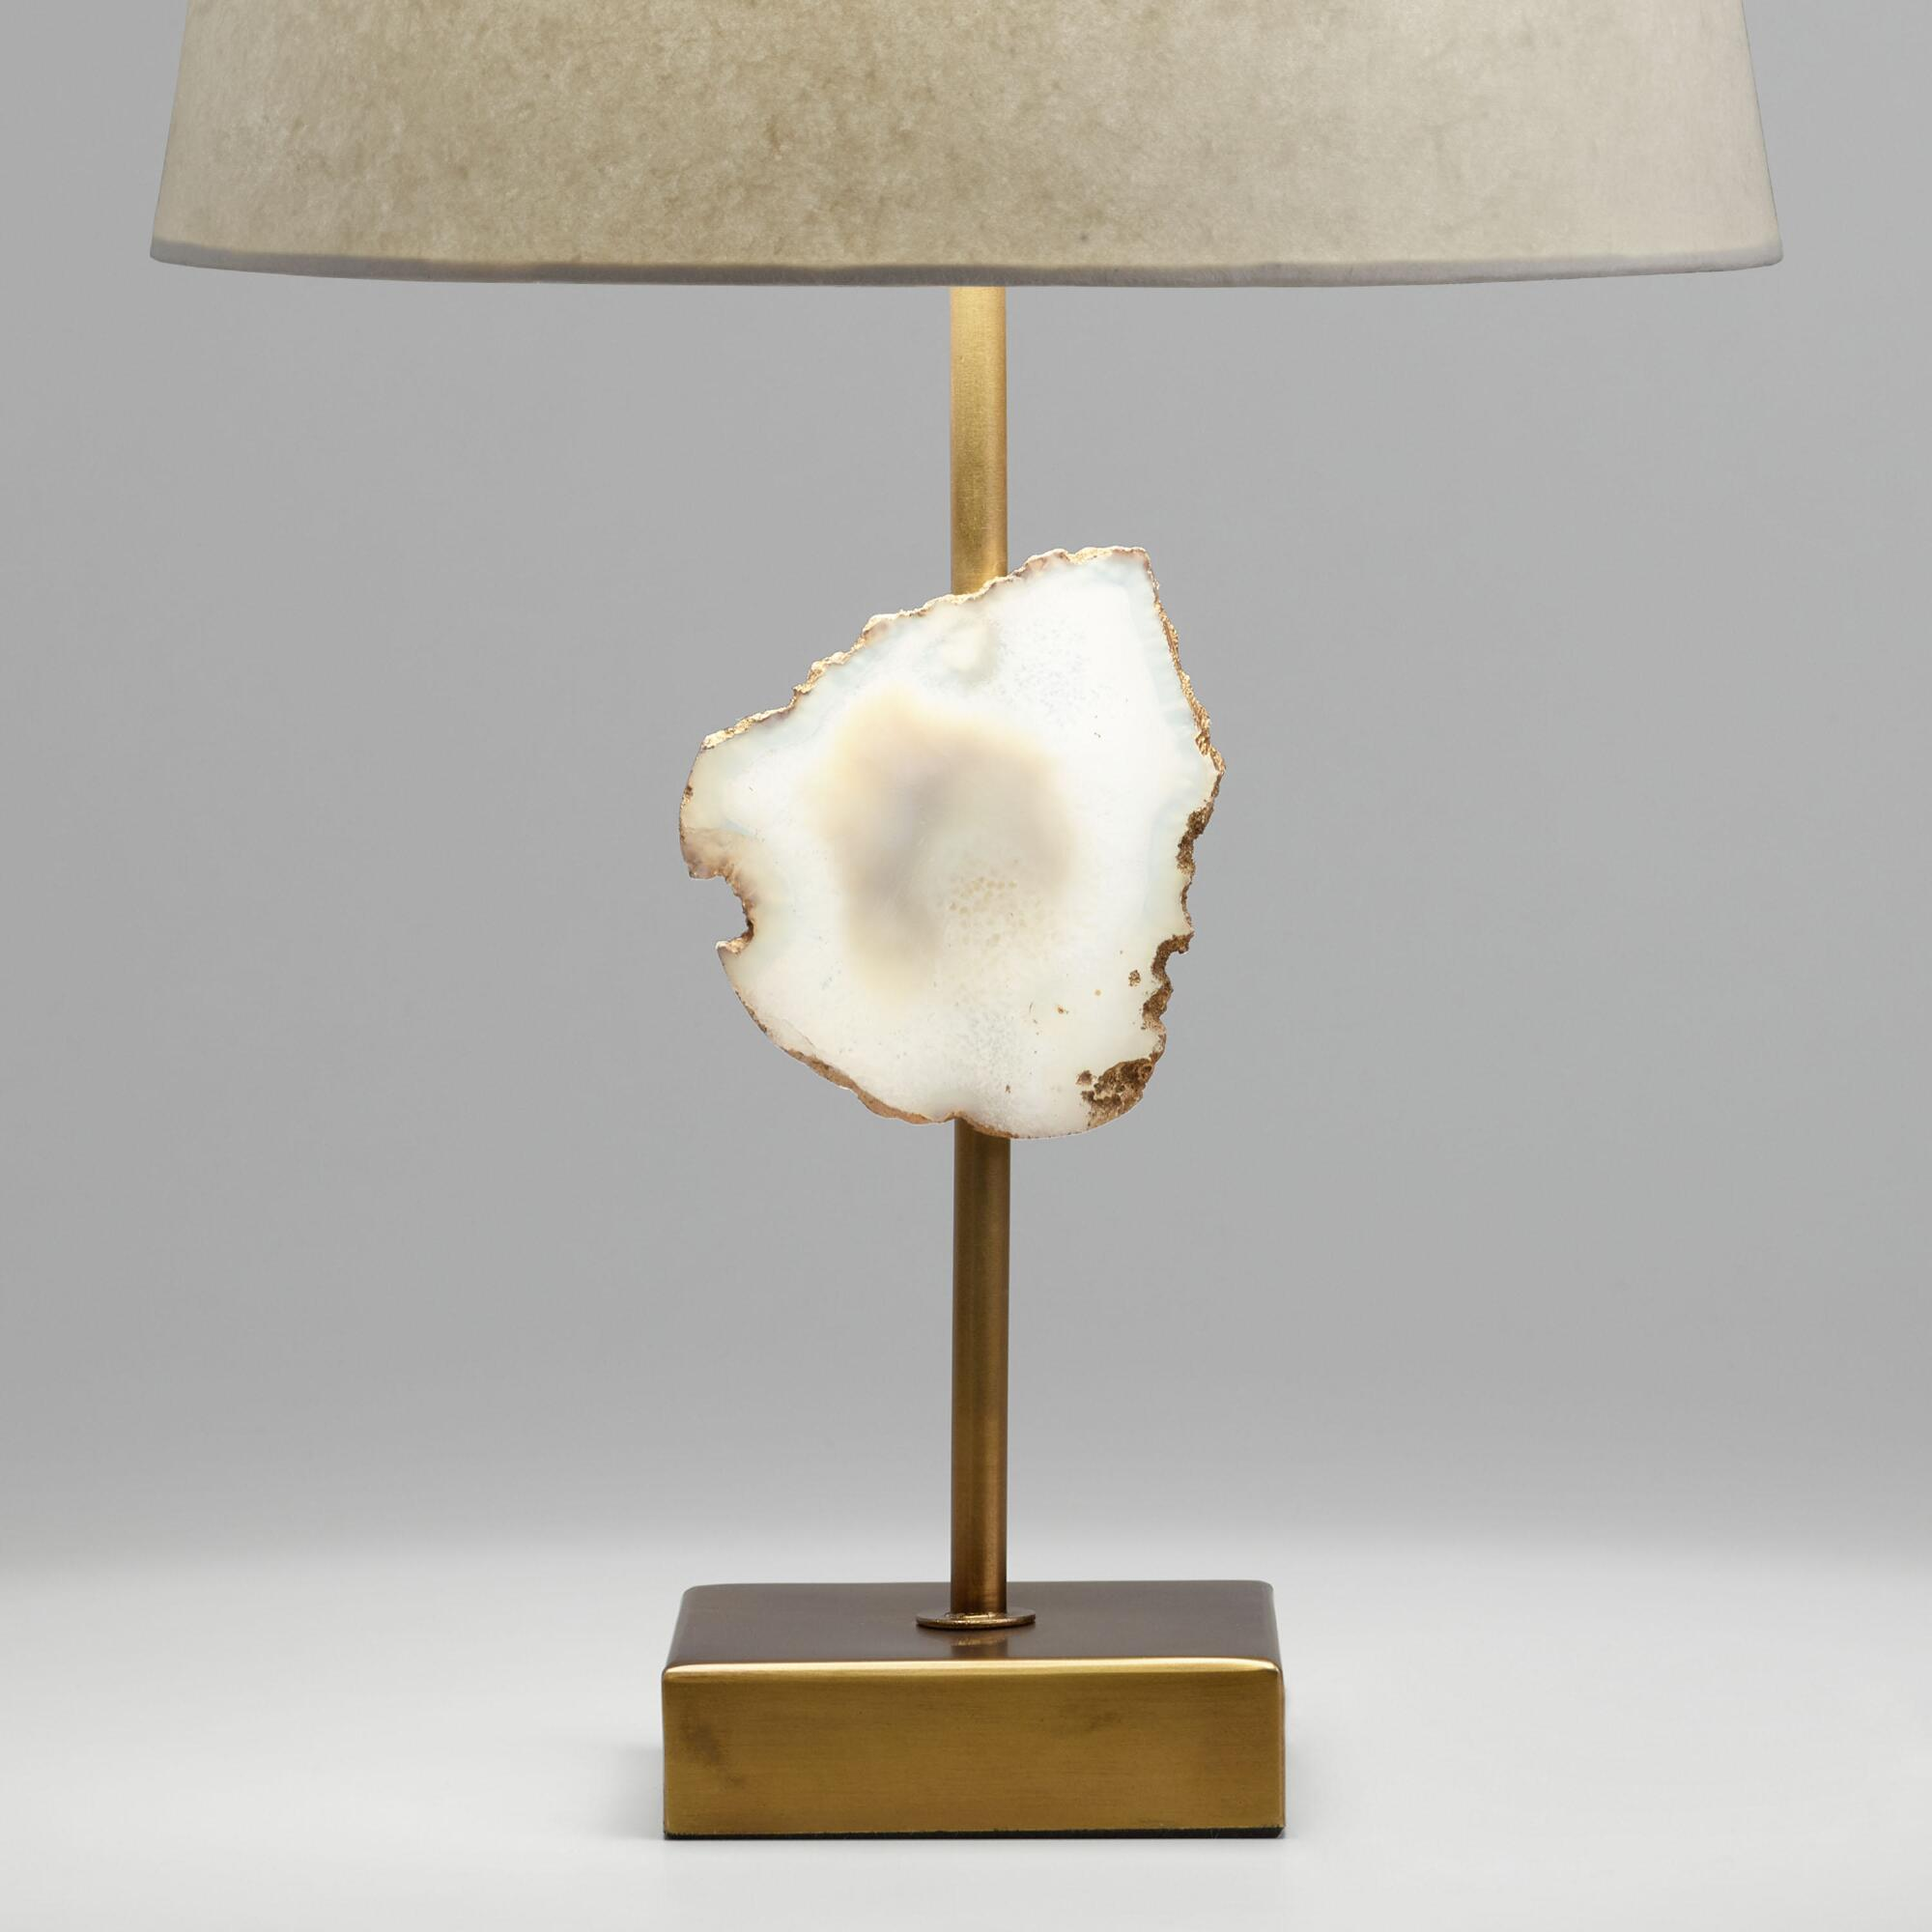 Natural Agate and Brass Accent Lamp Base by World Market